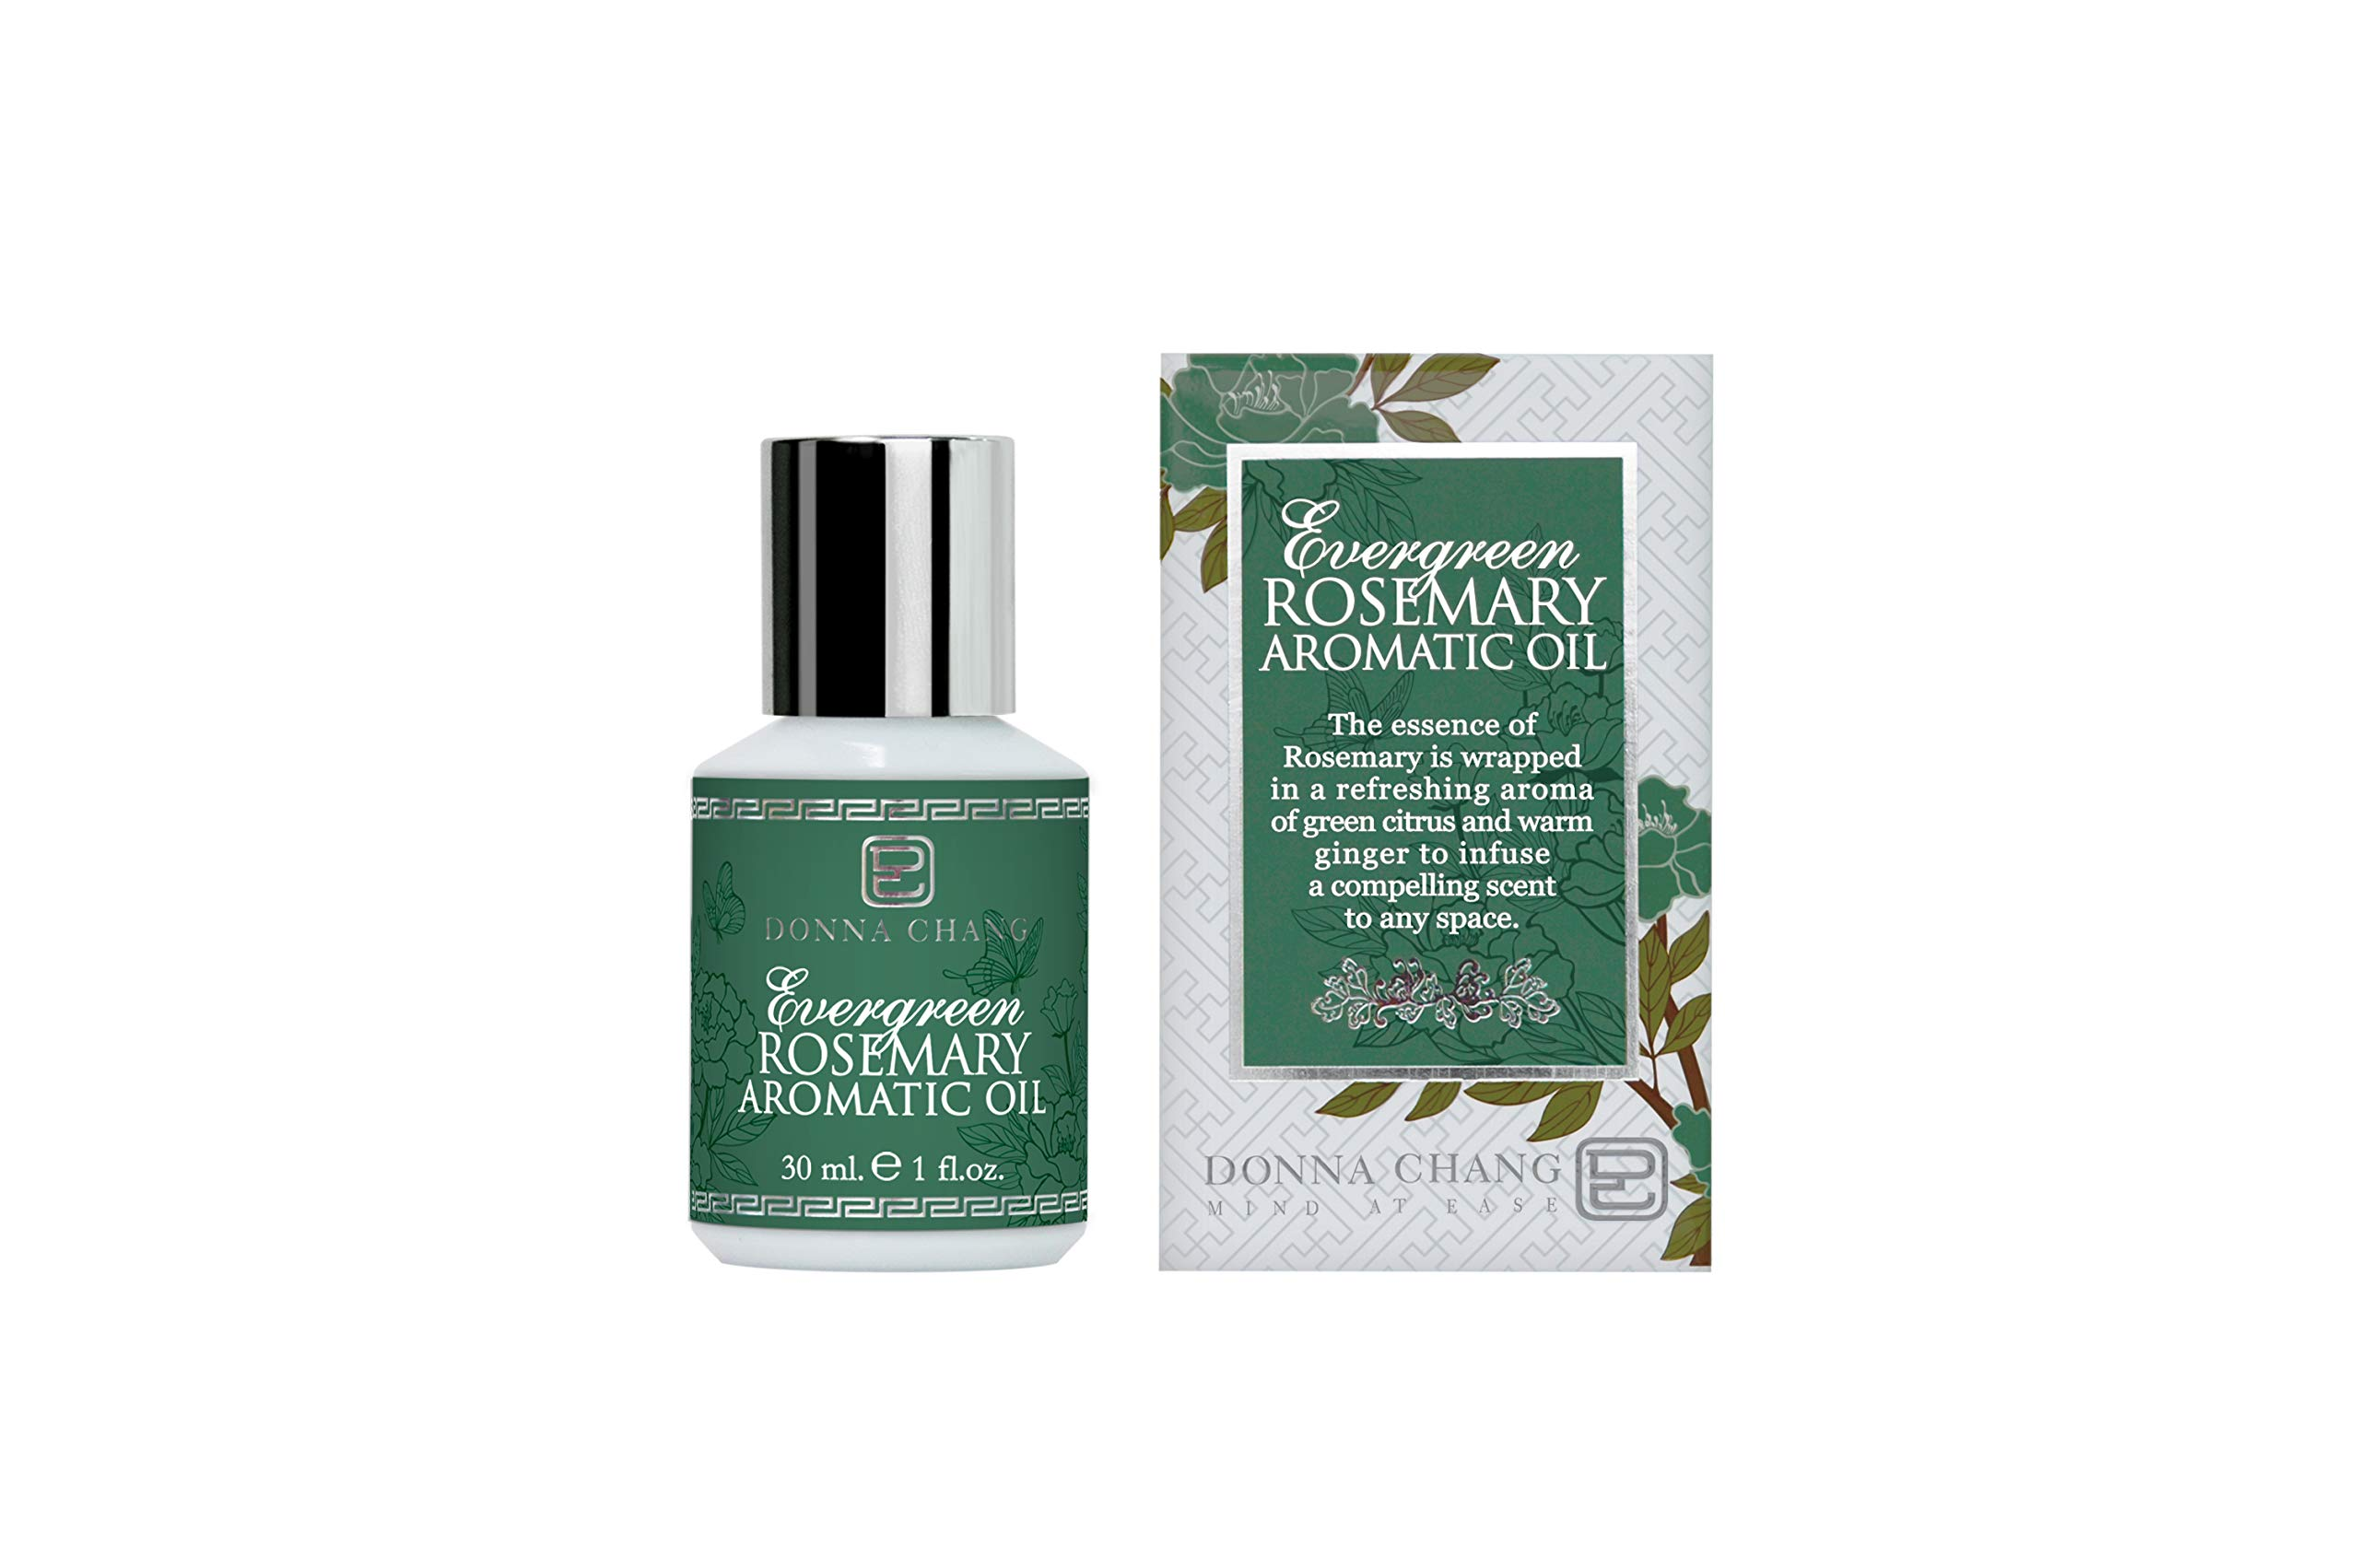 DONNA CHANG Evergreen Rosemary Aromatic Oil 30 ml. (3 Pack)